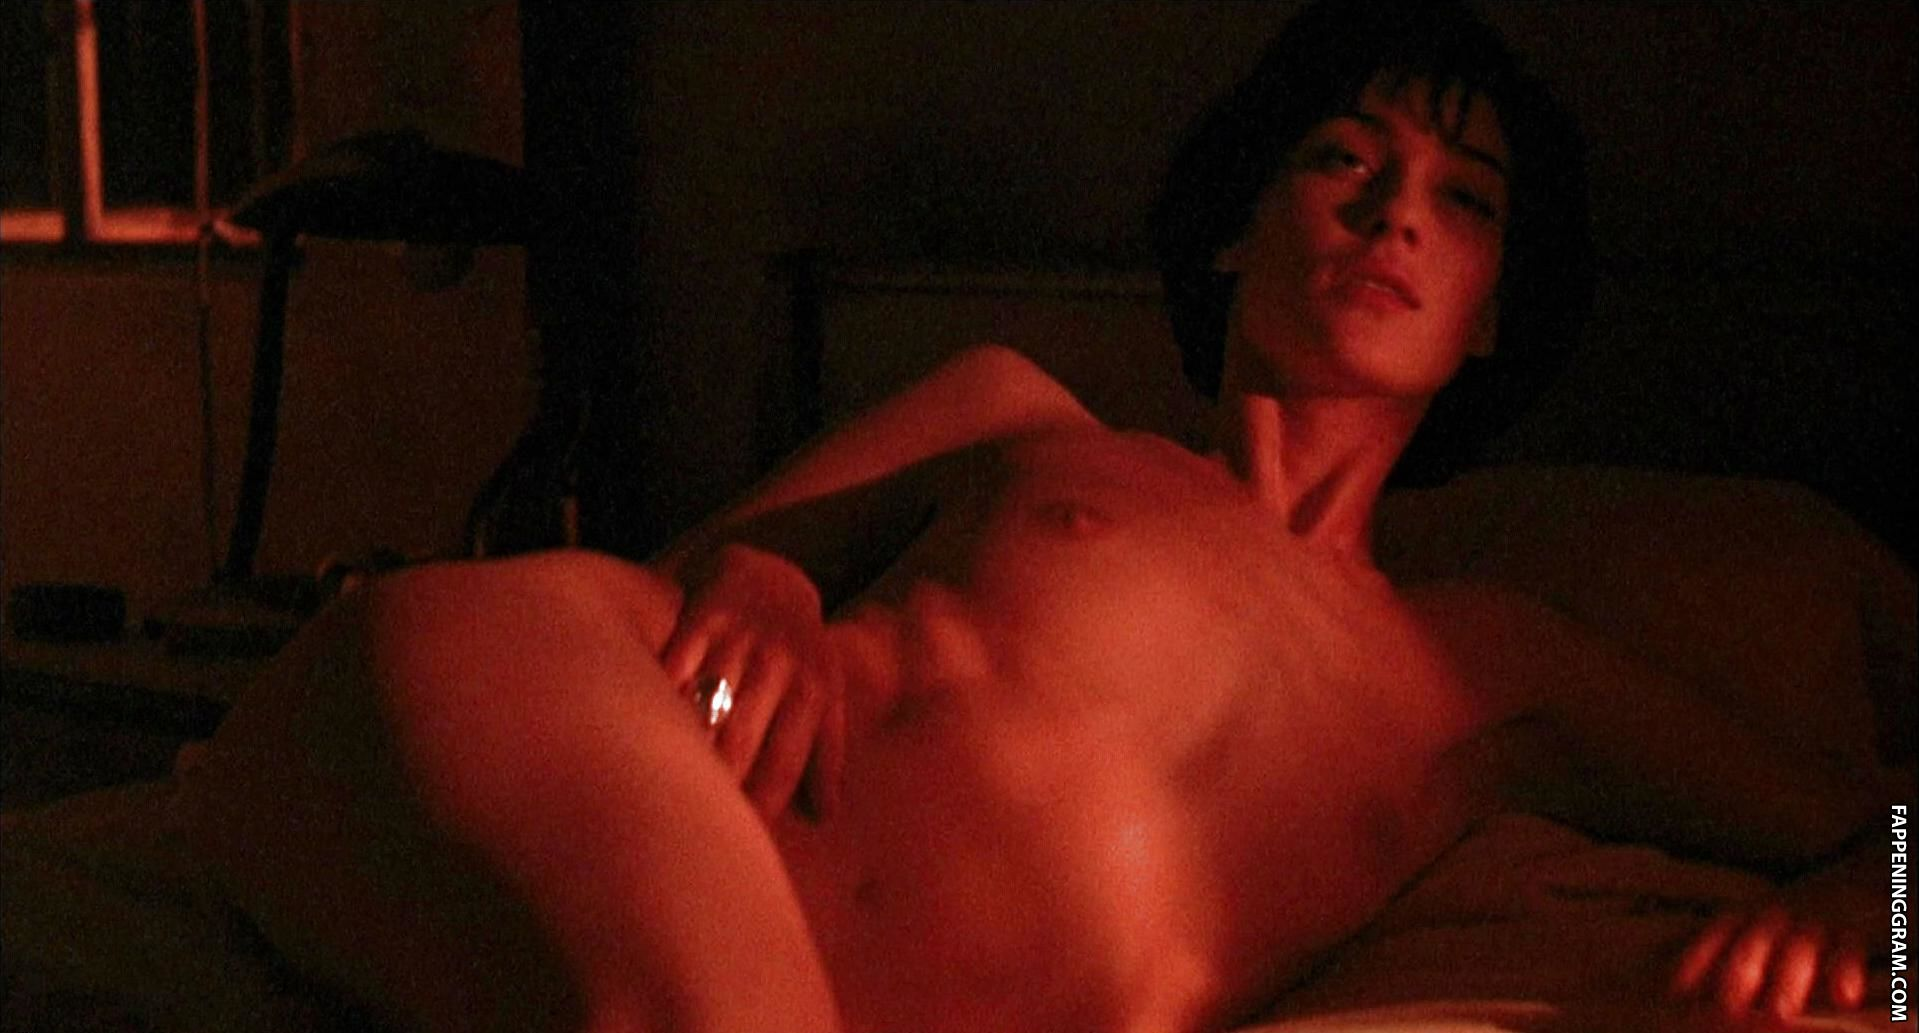 Mitzi martin sexy and nude pictures page of celebarazzi com nude celebrities nude picture